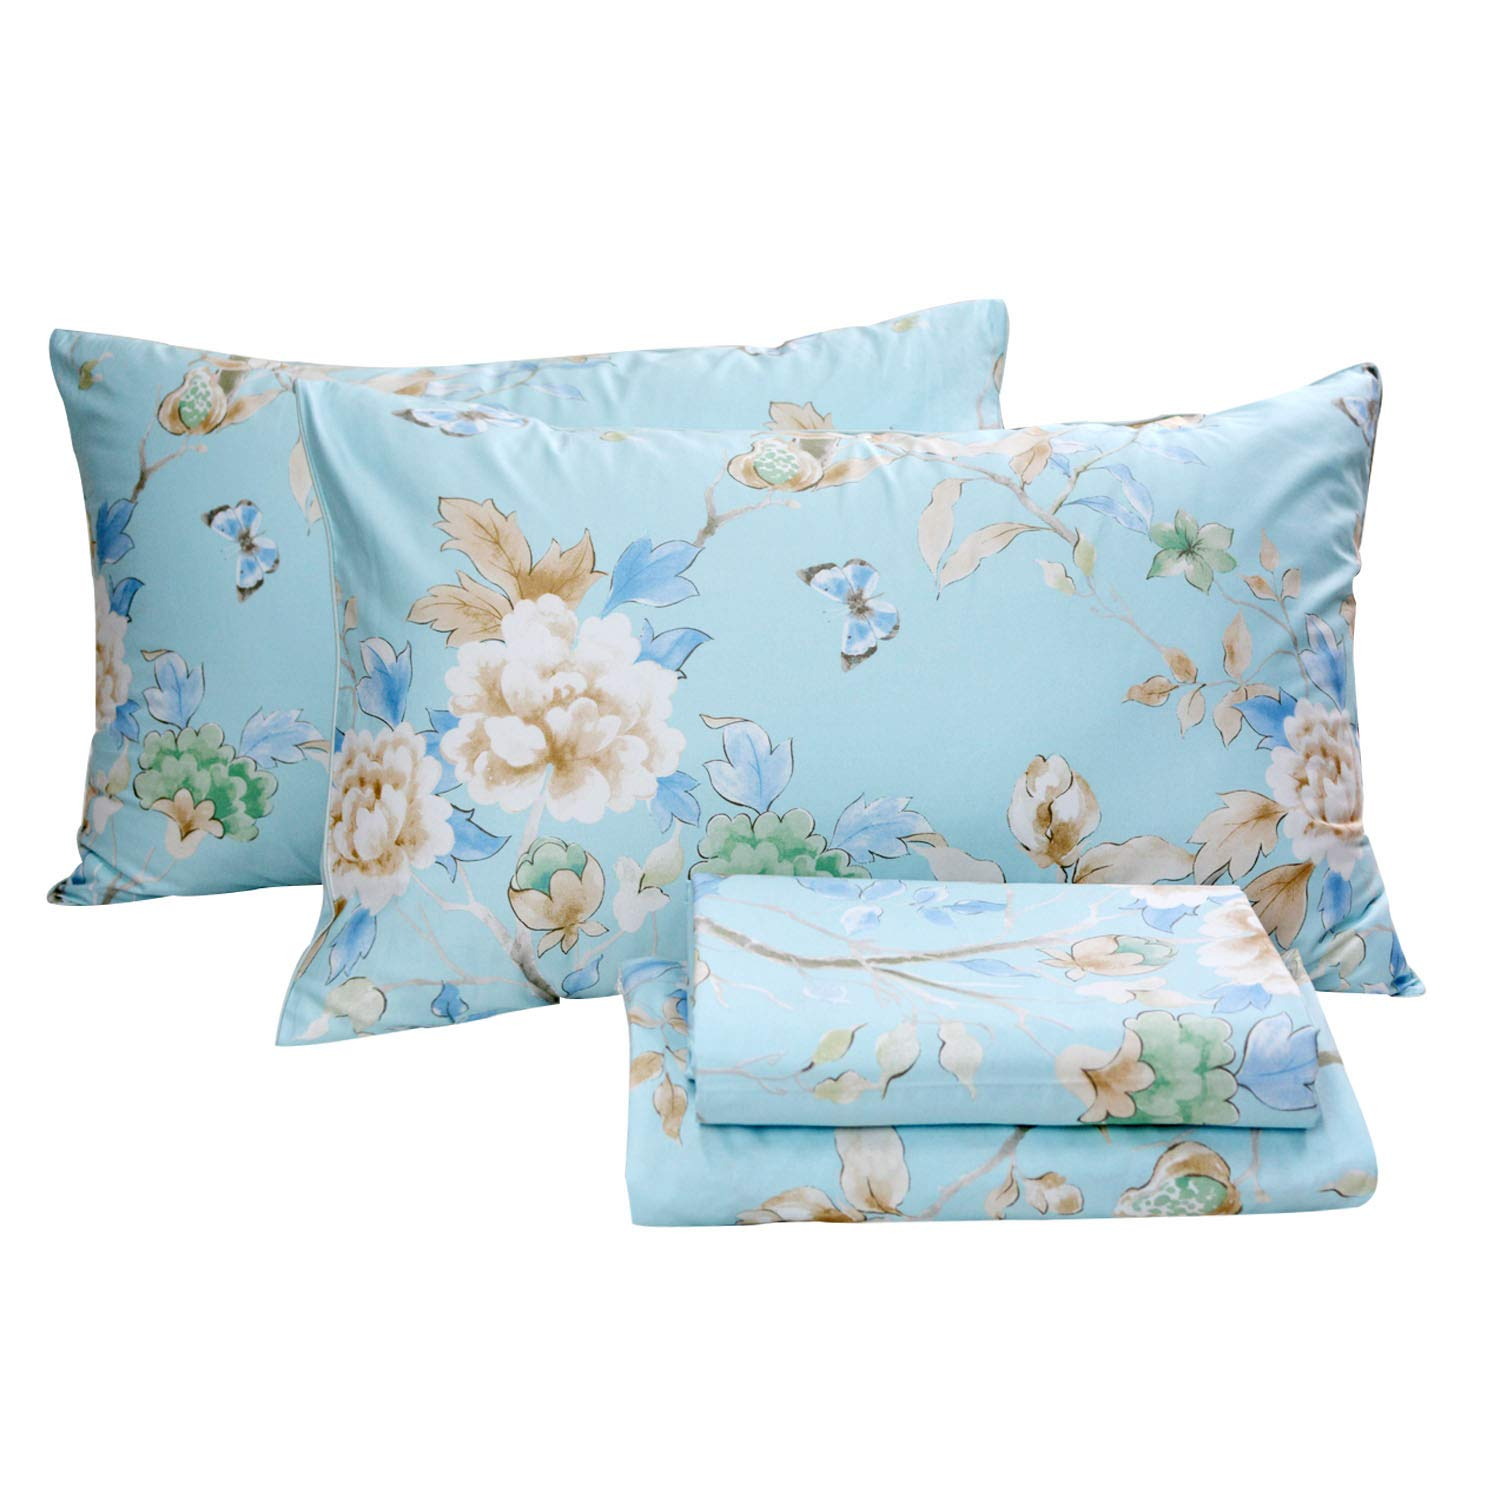 FADFAY Floral Bedding Shabby Blue Bird Print Bed Sheet Set Luxury Bedding Collections 800 Thread Count 100% Egyptian Cotton Deep Pocket, 4 Piece-Queen Size